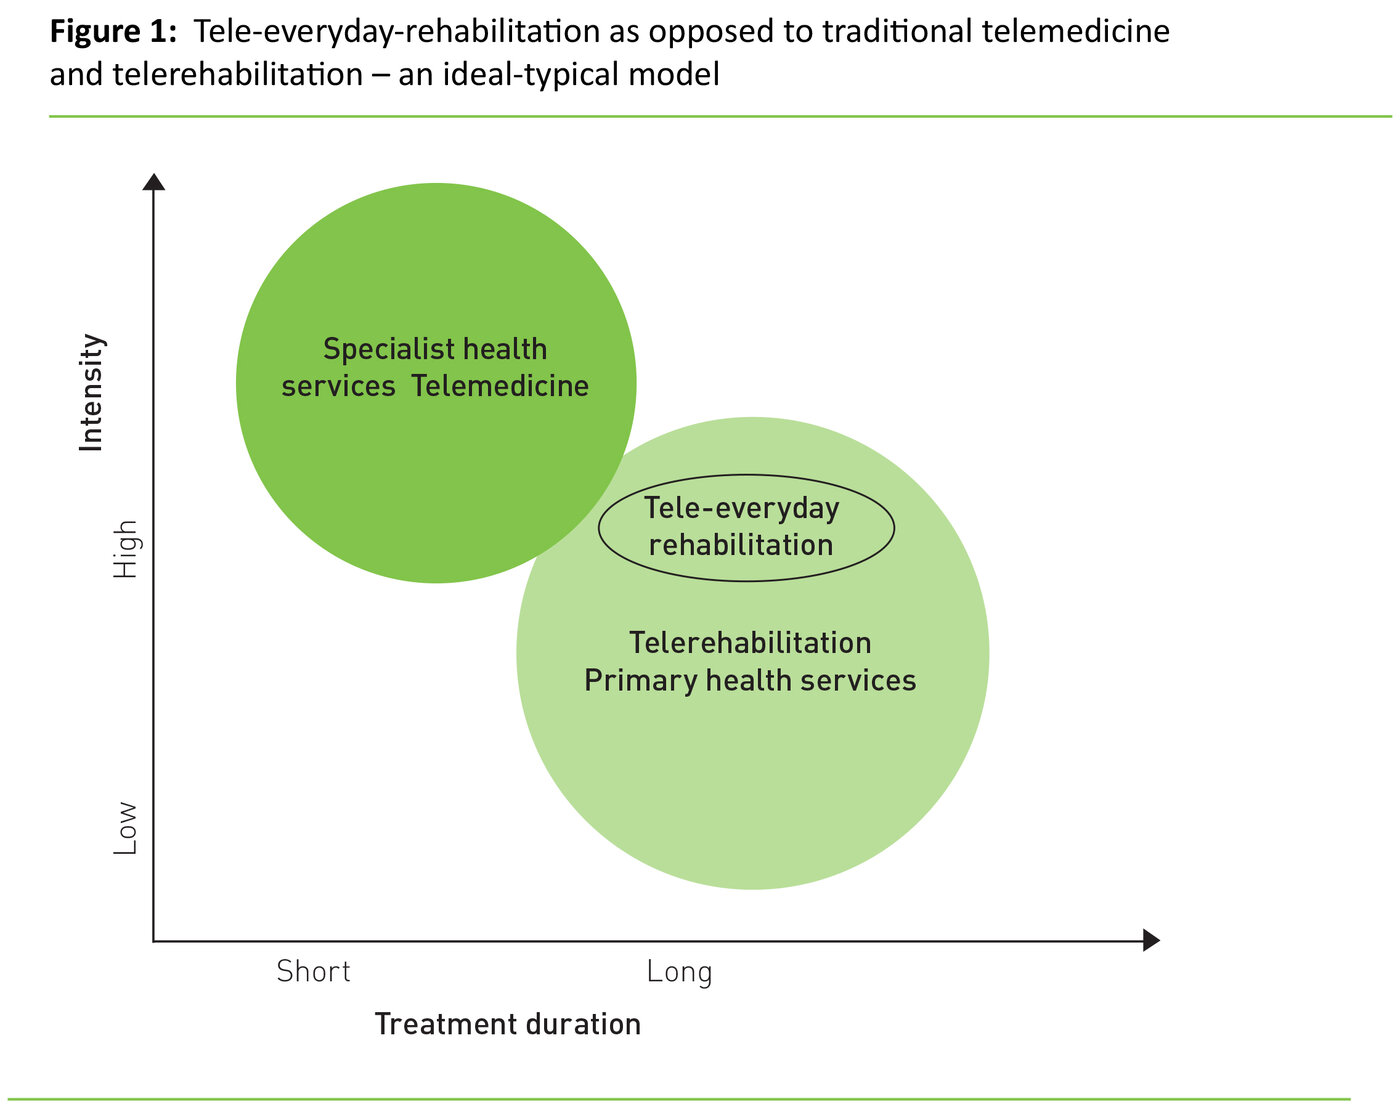 Figure 1: Tele-everyday-rehabilitation as opposed to traditional telemedicine and telerehabilitation – an ideal-typical model